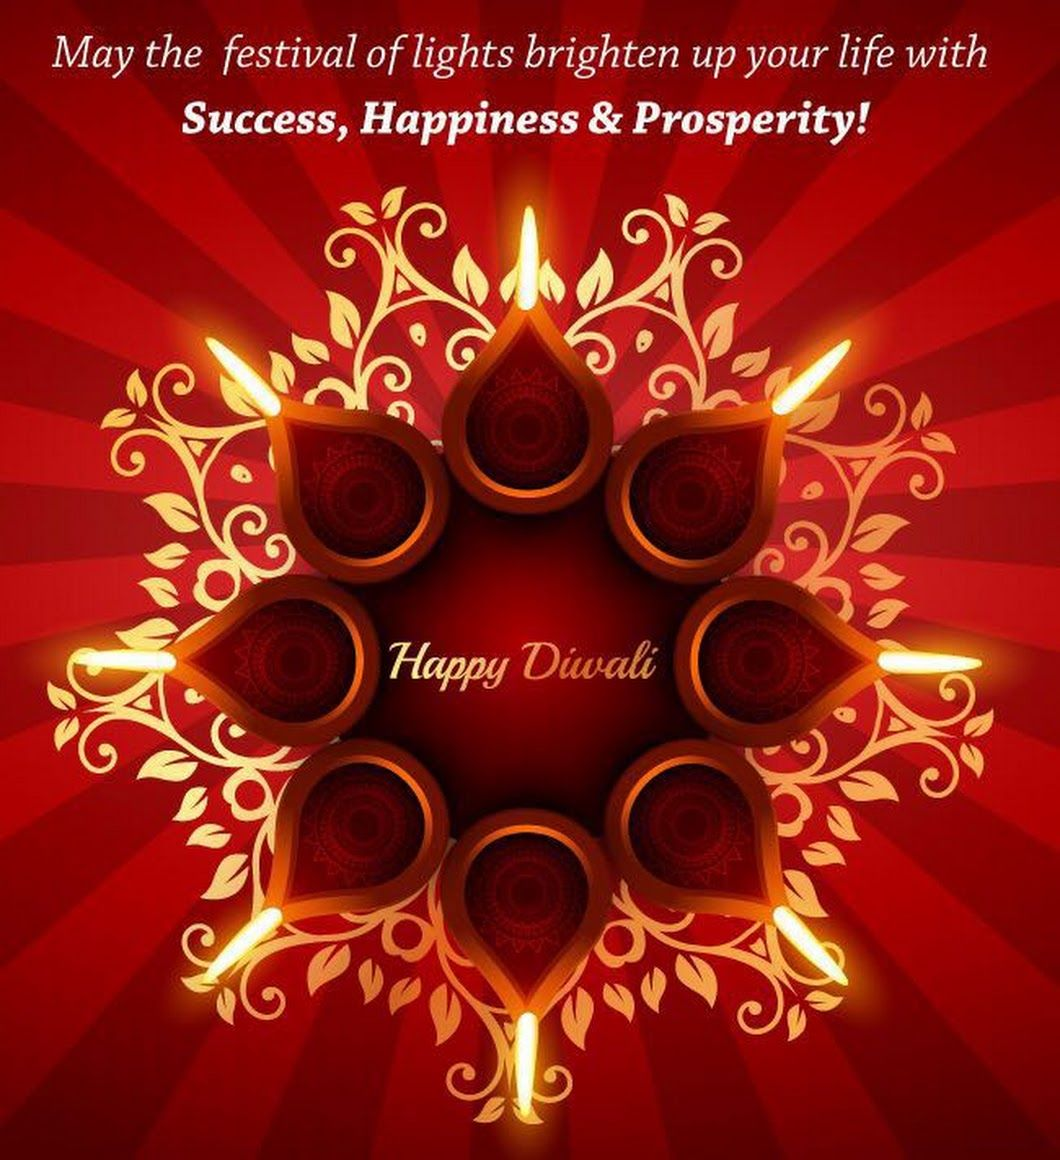 Good morning Friends.... (With images) | Happy diwali ...